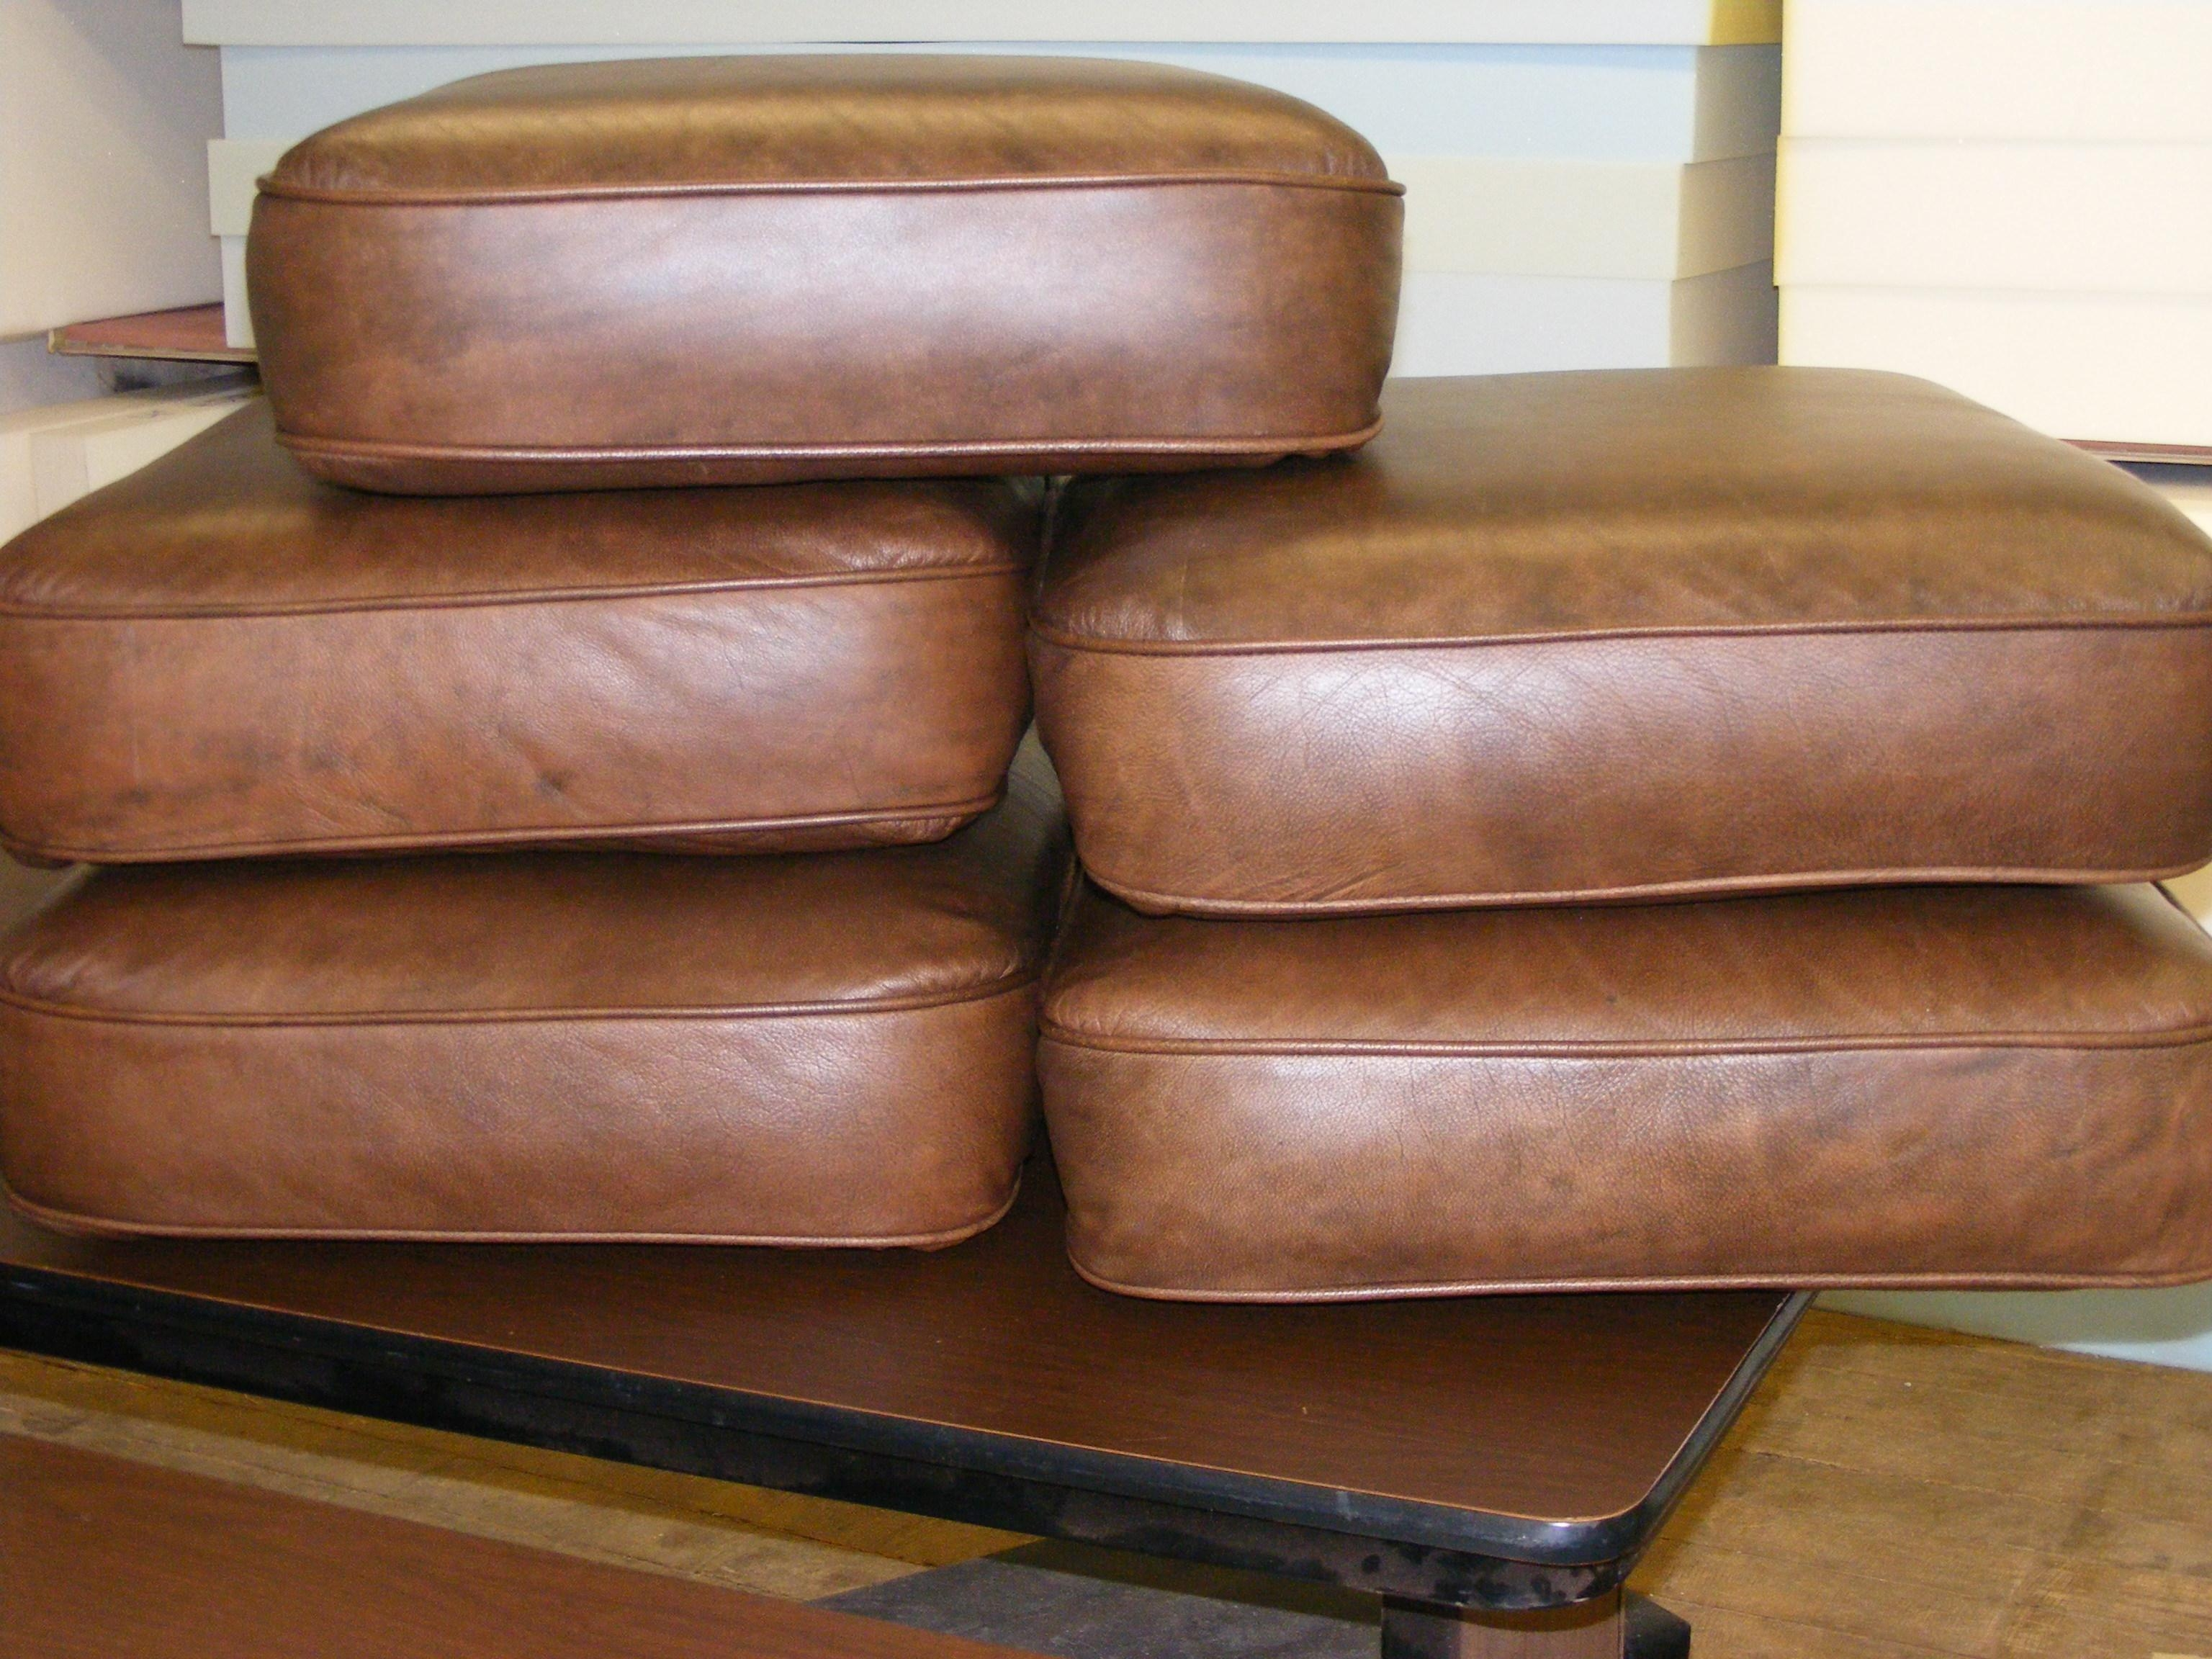 New Replacement Cores For Leather Furniture Cushions – Firm Cushions Inside Sofa Cushions (View 7 of 21)